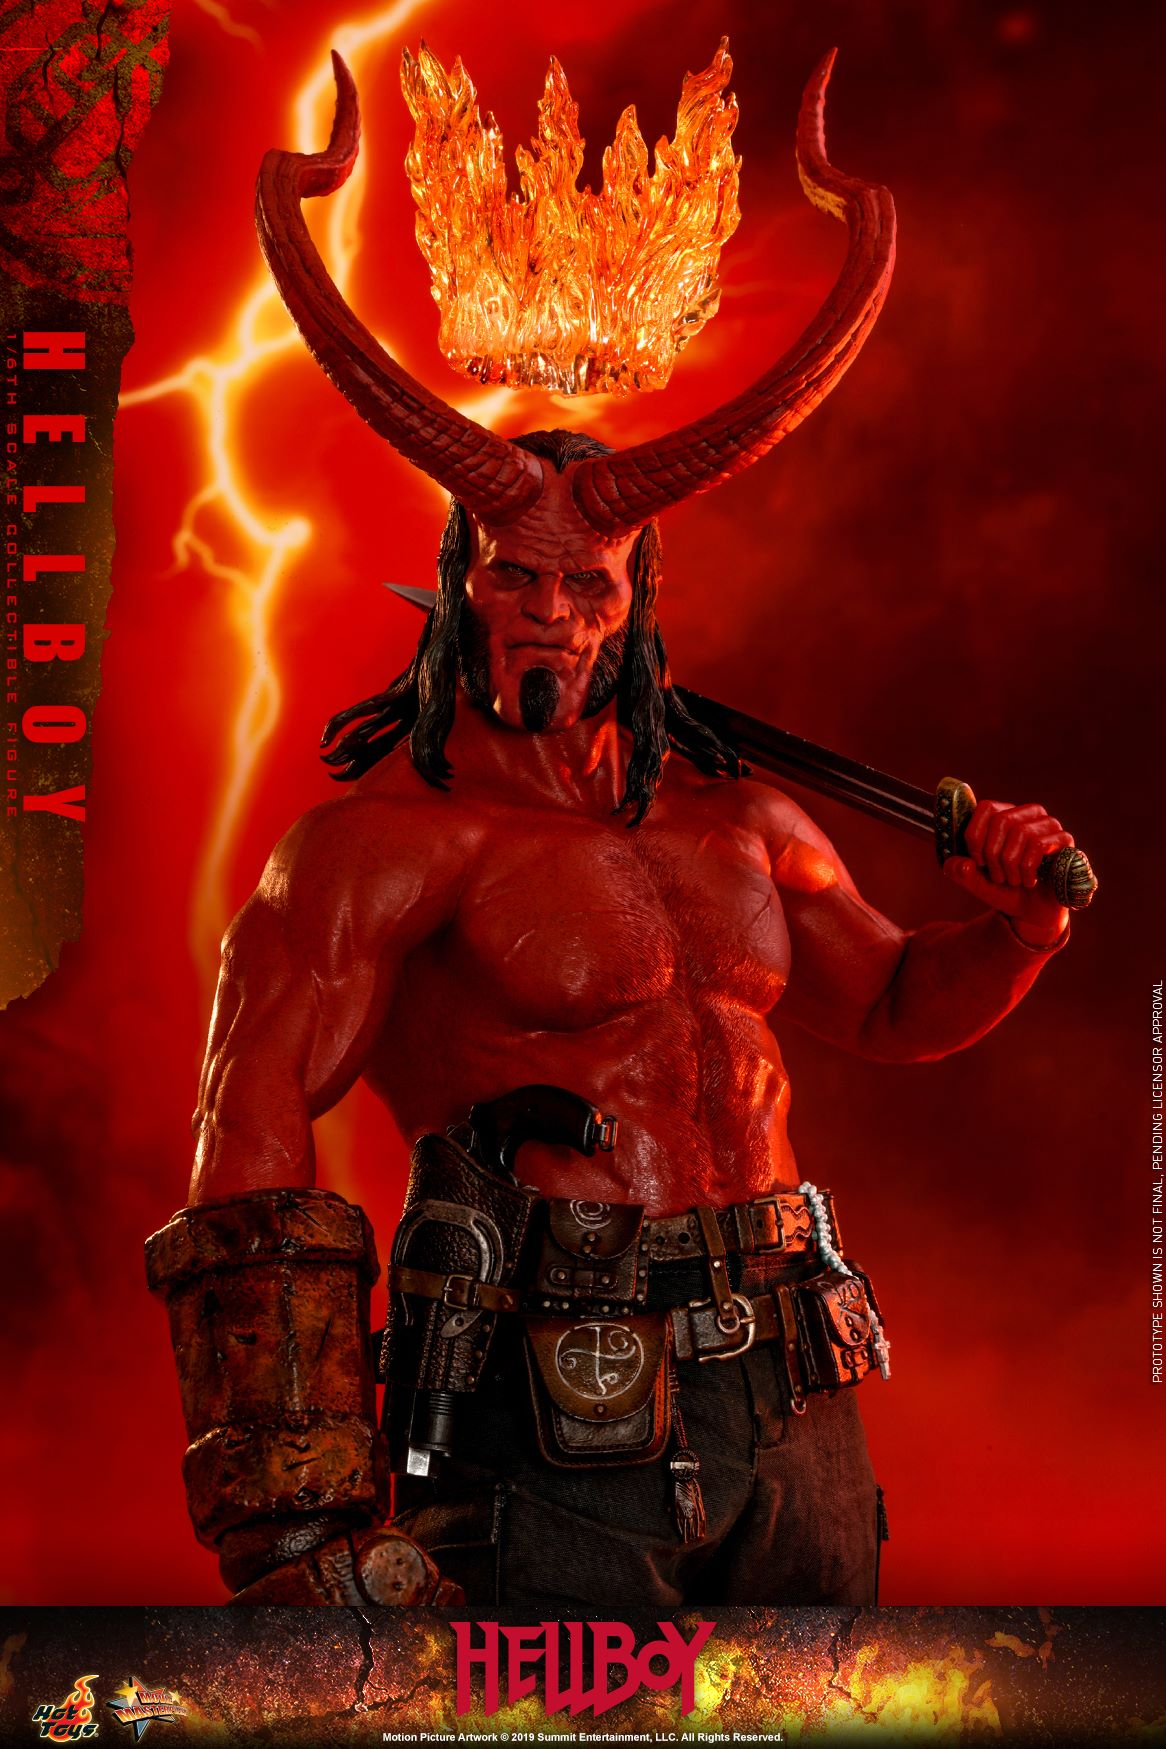 Hot Toys 1/6 Scale Hellboy (2019) Figure Revealed